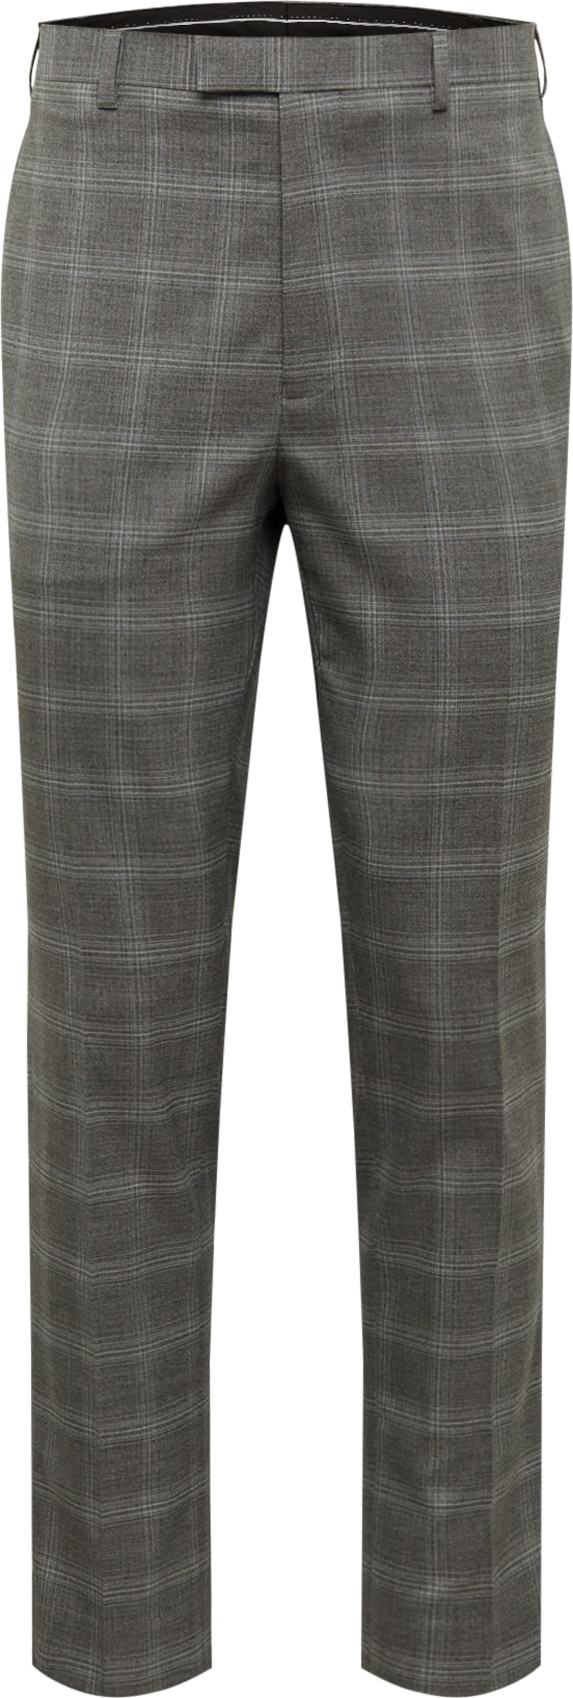 BURTON MENSWEAR LONDON Chino kalhoty GREY FINE CHECK SKINNY šedá Burton Menswear London